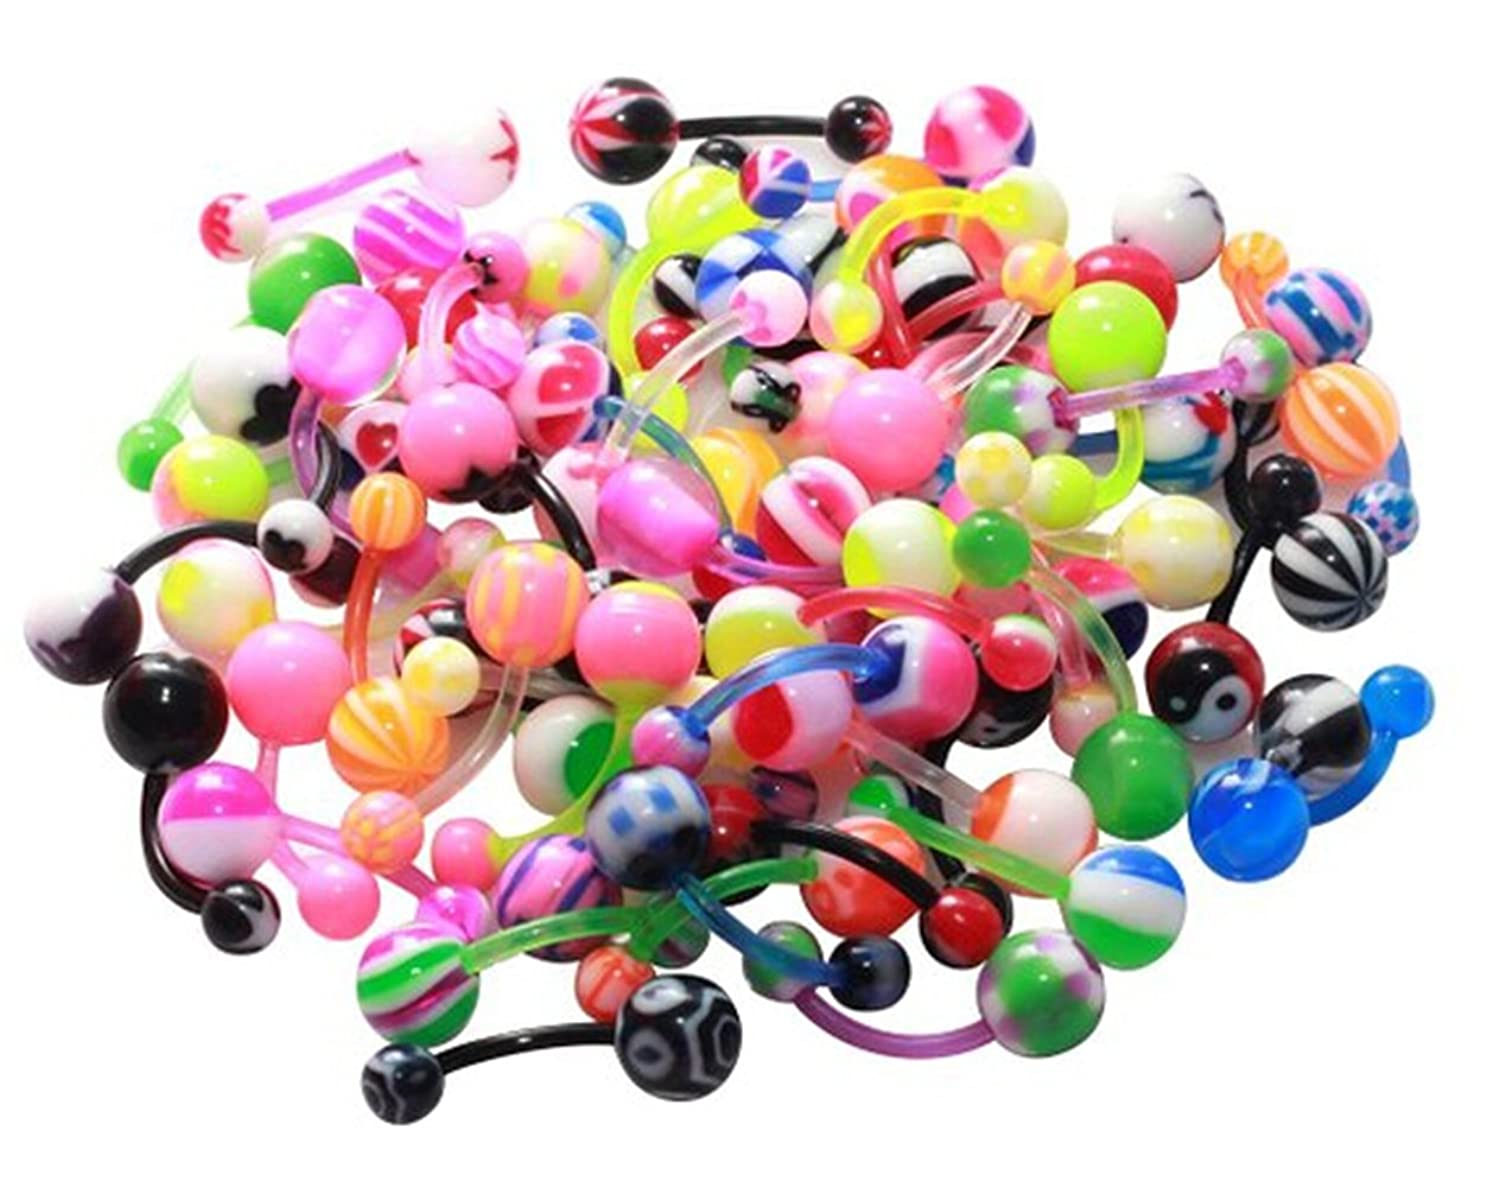 21secret 100pcs Colorful Ball Barbell Curved Navel Belly Button Rings Bars Piercing glow in dark plastic navel belly body piercing bars rings multicolored 7 pcs